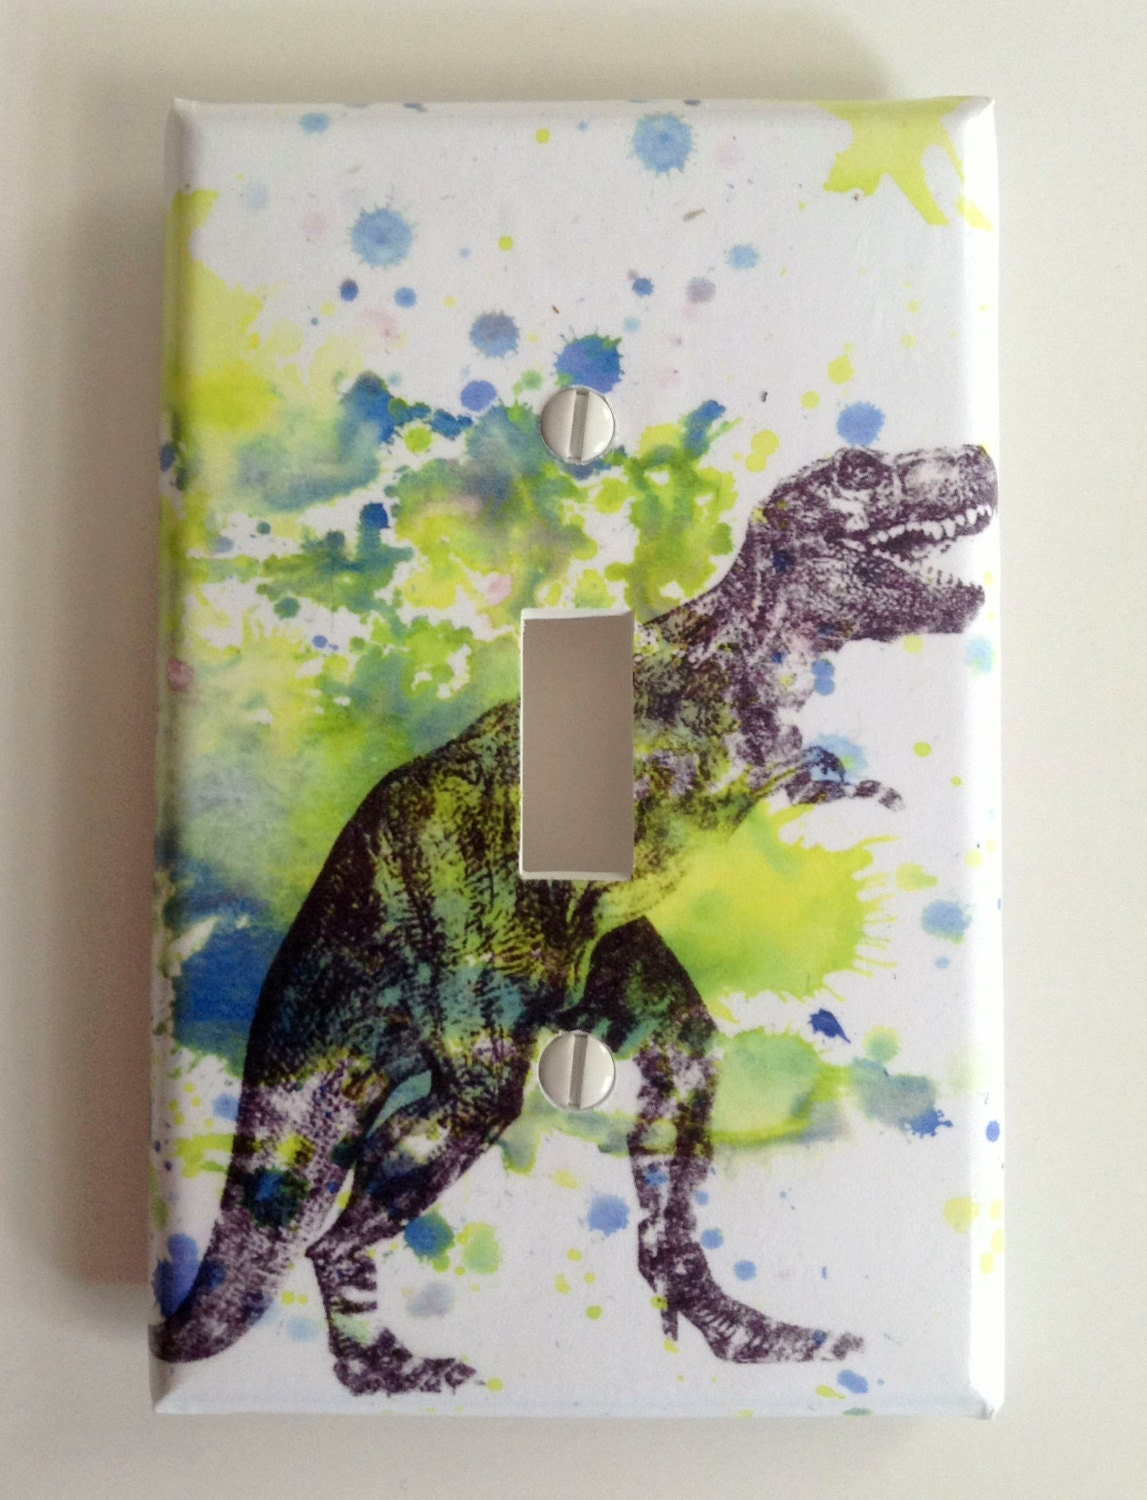 Tyrannosaurus Rex T-rex Dinosaur Decorative Light Switch Plate Cover Great for Children Kids Room Decor - idillard